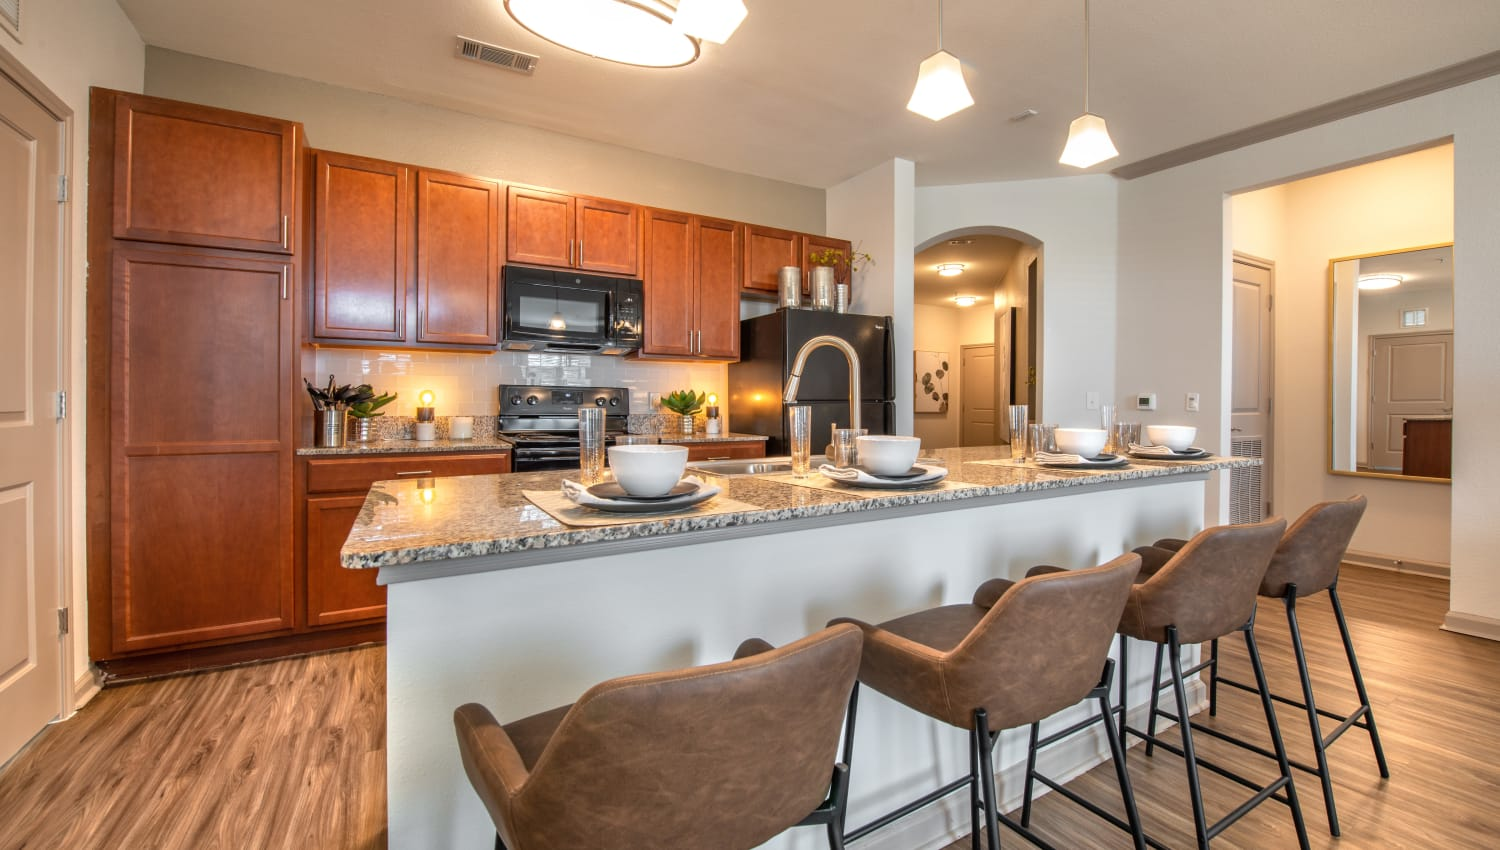 Beautiful kitchen at Olympus Katy Ranch in Katy, Texas